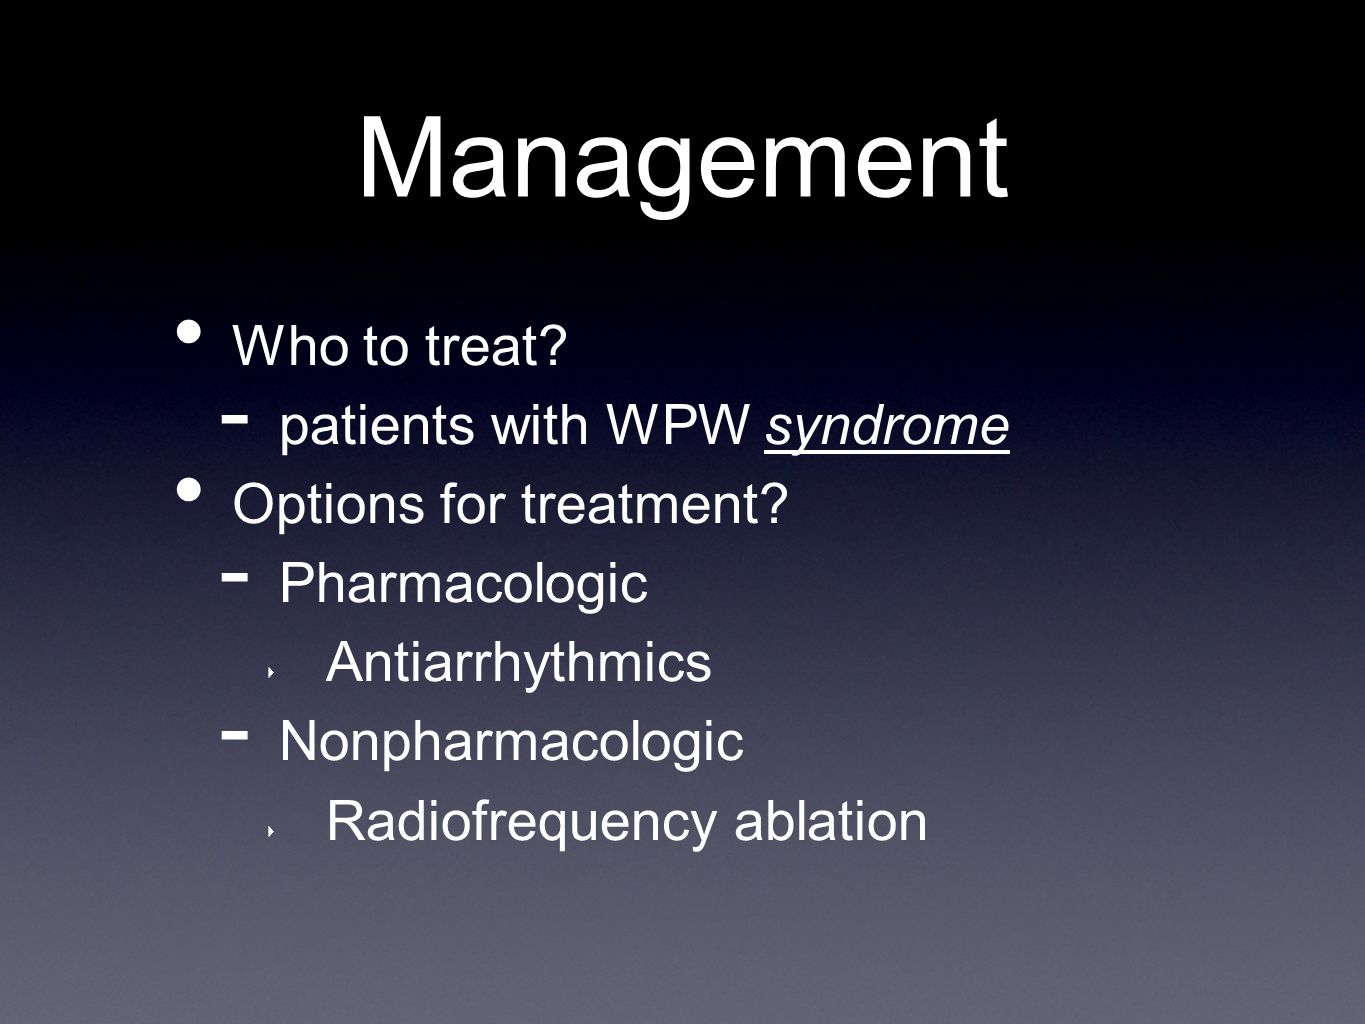 Management Who to treat patients with WPW syndrome